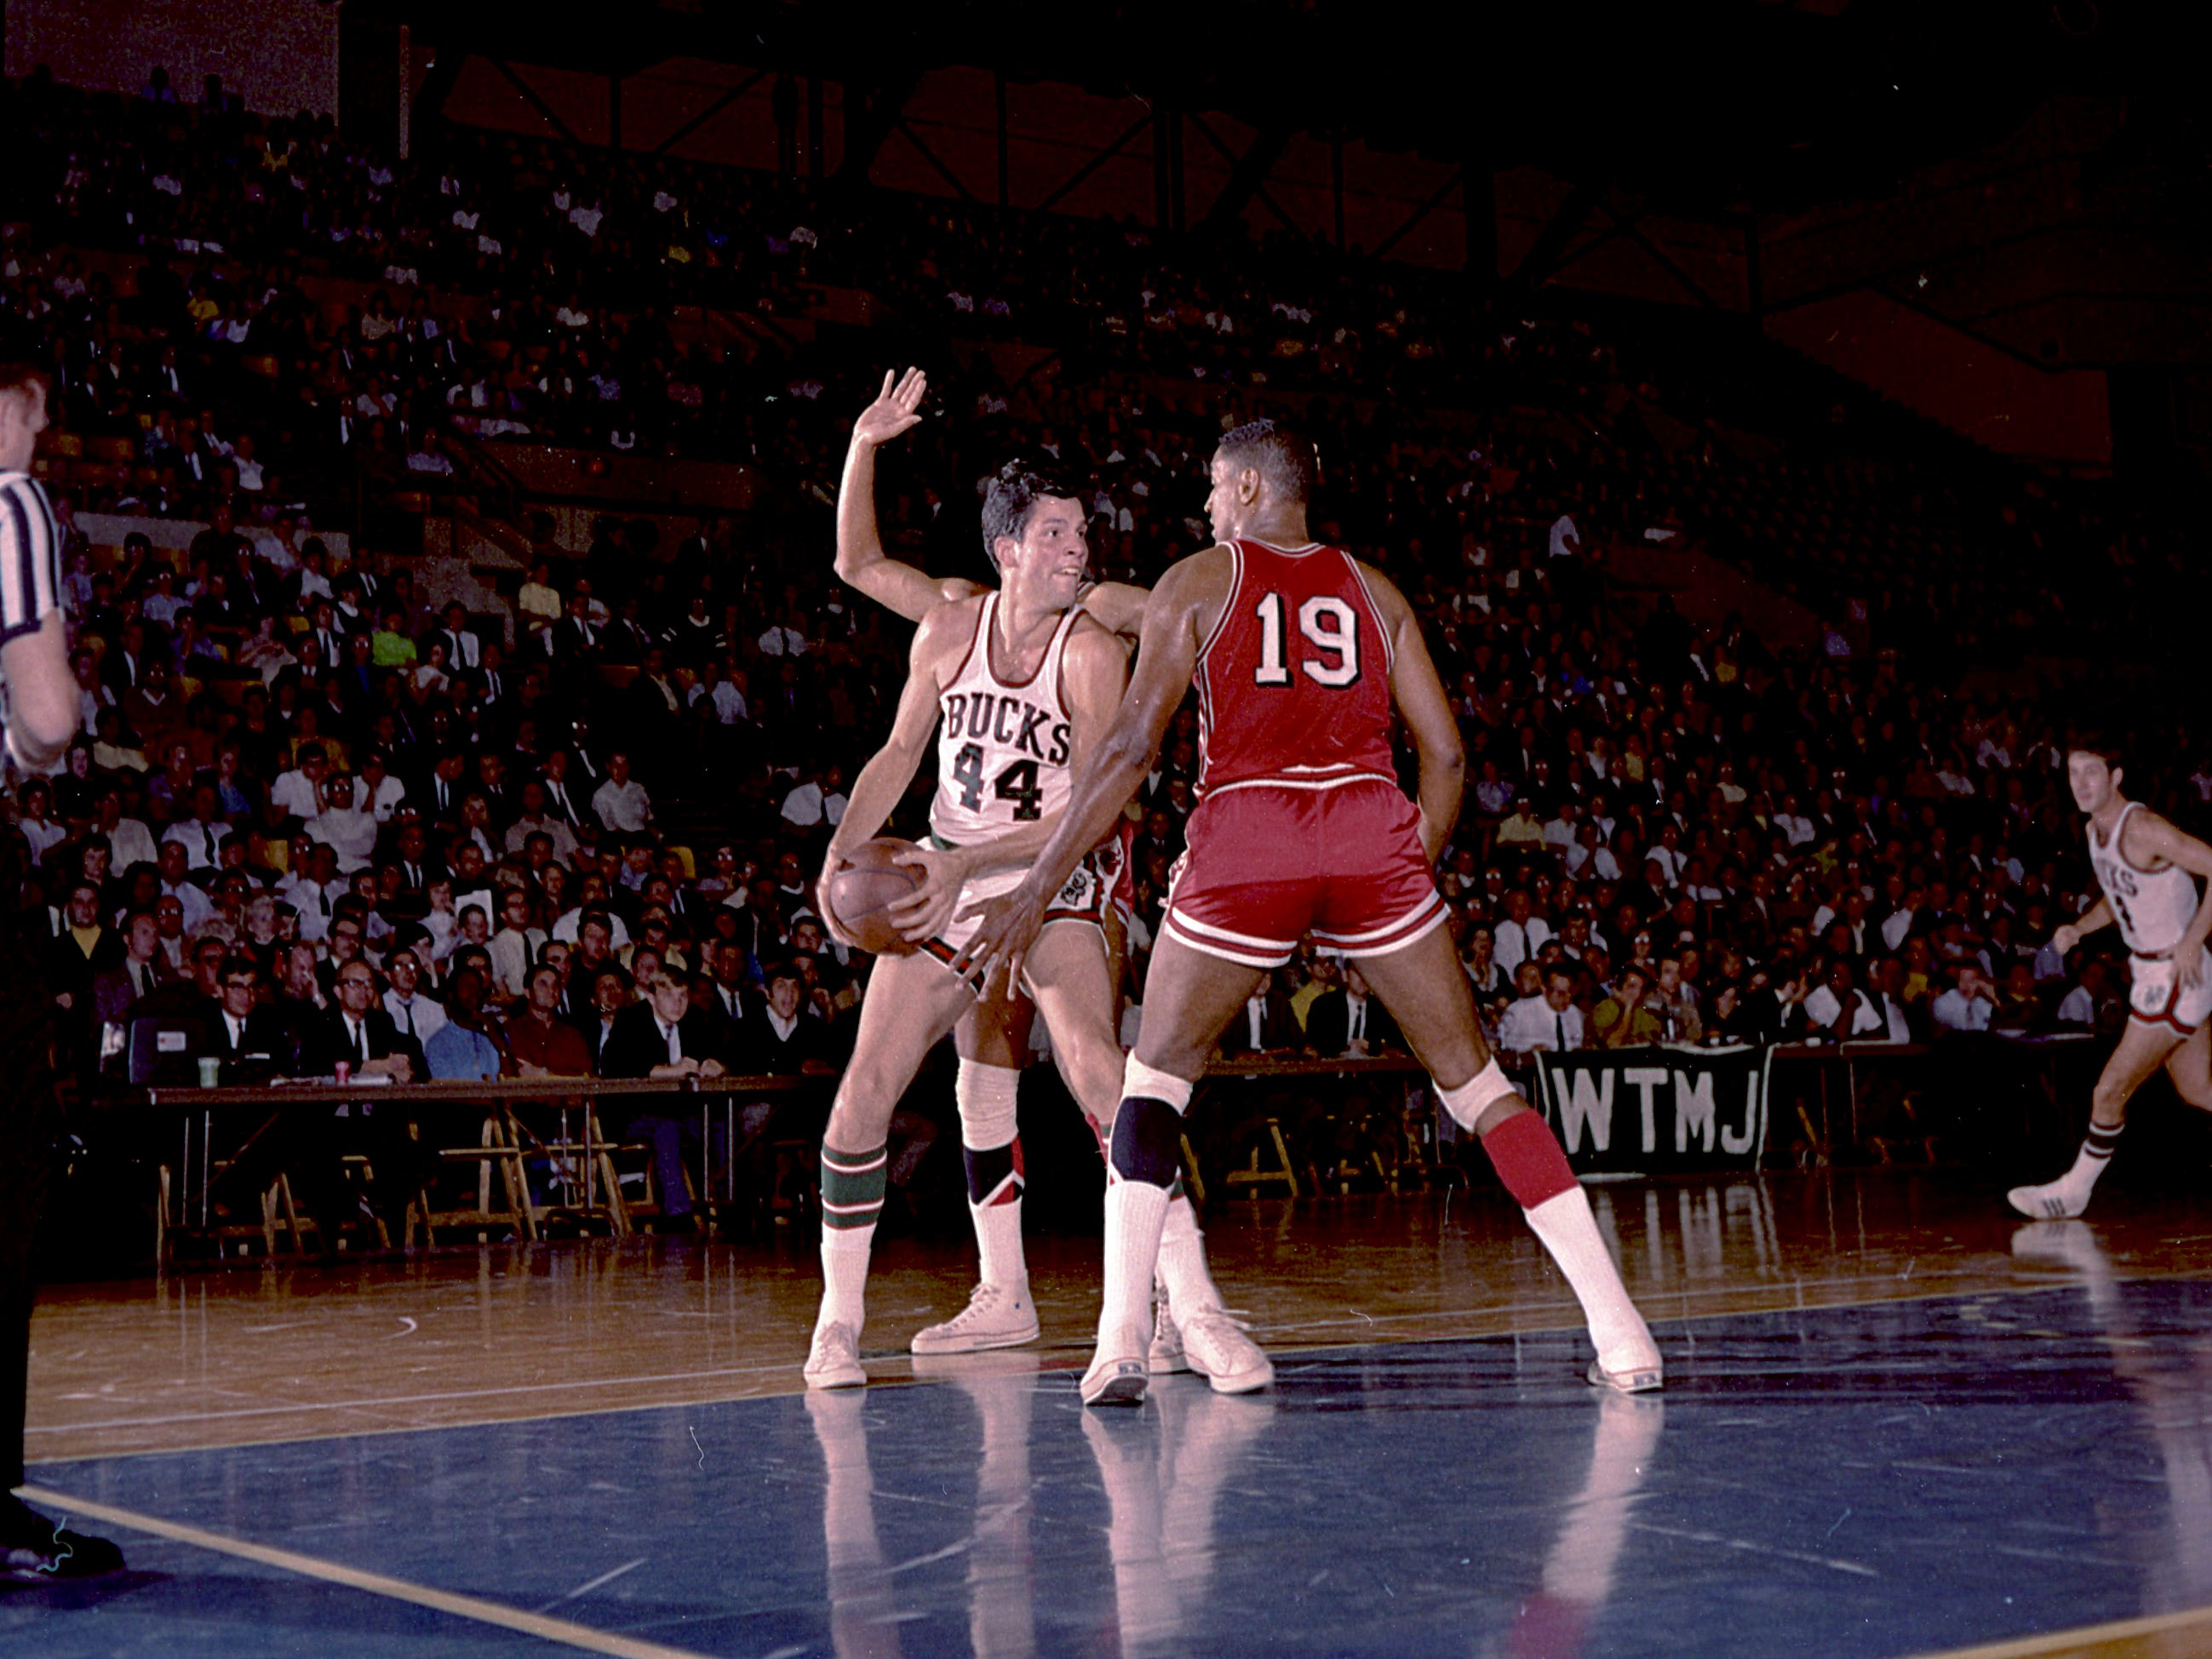 Milwaukee Bucks forward Fred Hetzel (44) finds himself surrounded by Chicago Bulls, including forward Bob Boozer (19) during the Bucks' first-ever game in the NBA on Oct. 16, 1968, at the Milwaukee Arena. The Bucks lost, 89-84.